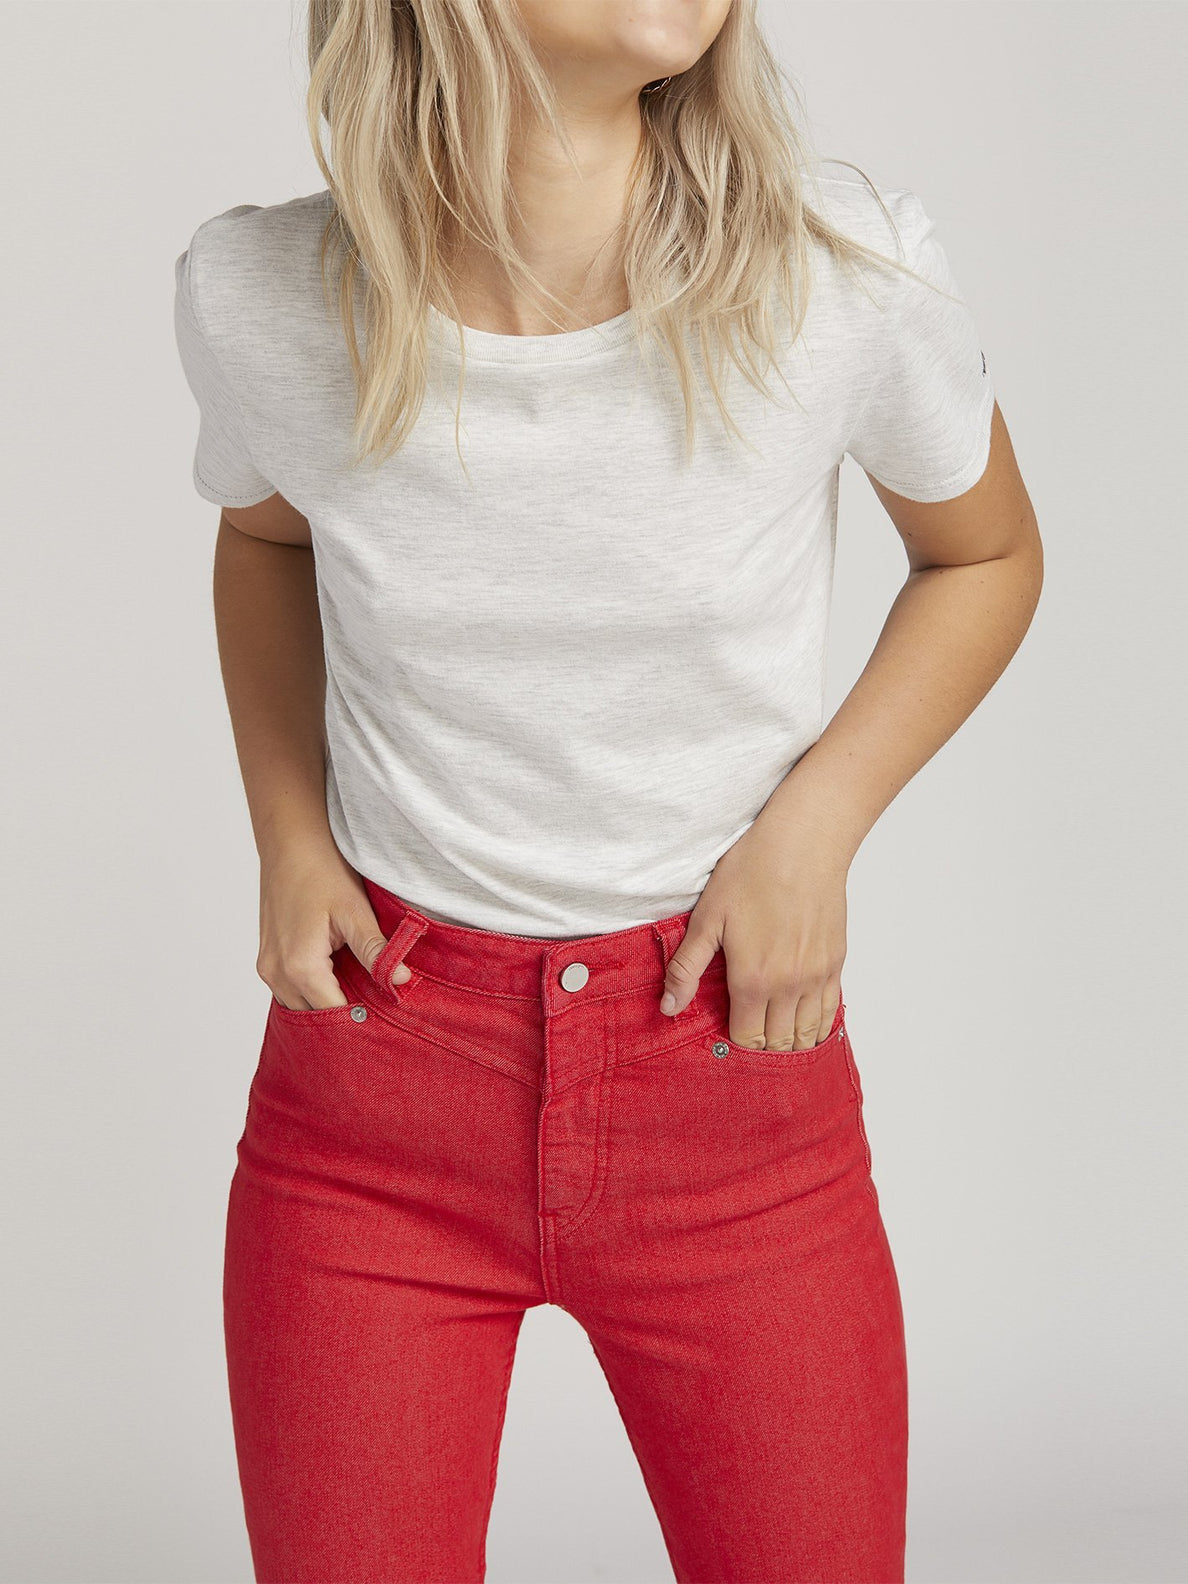 Gmj High Rise Jean  - Red